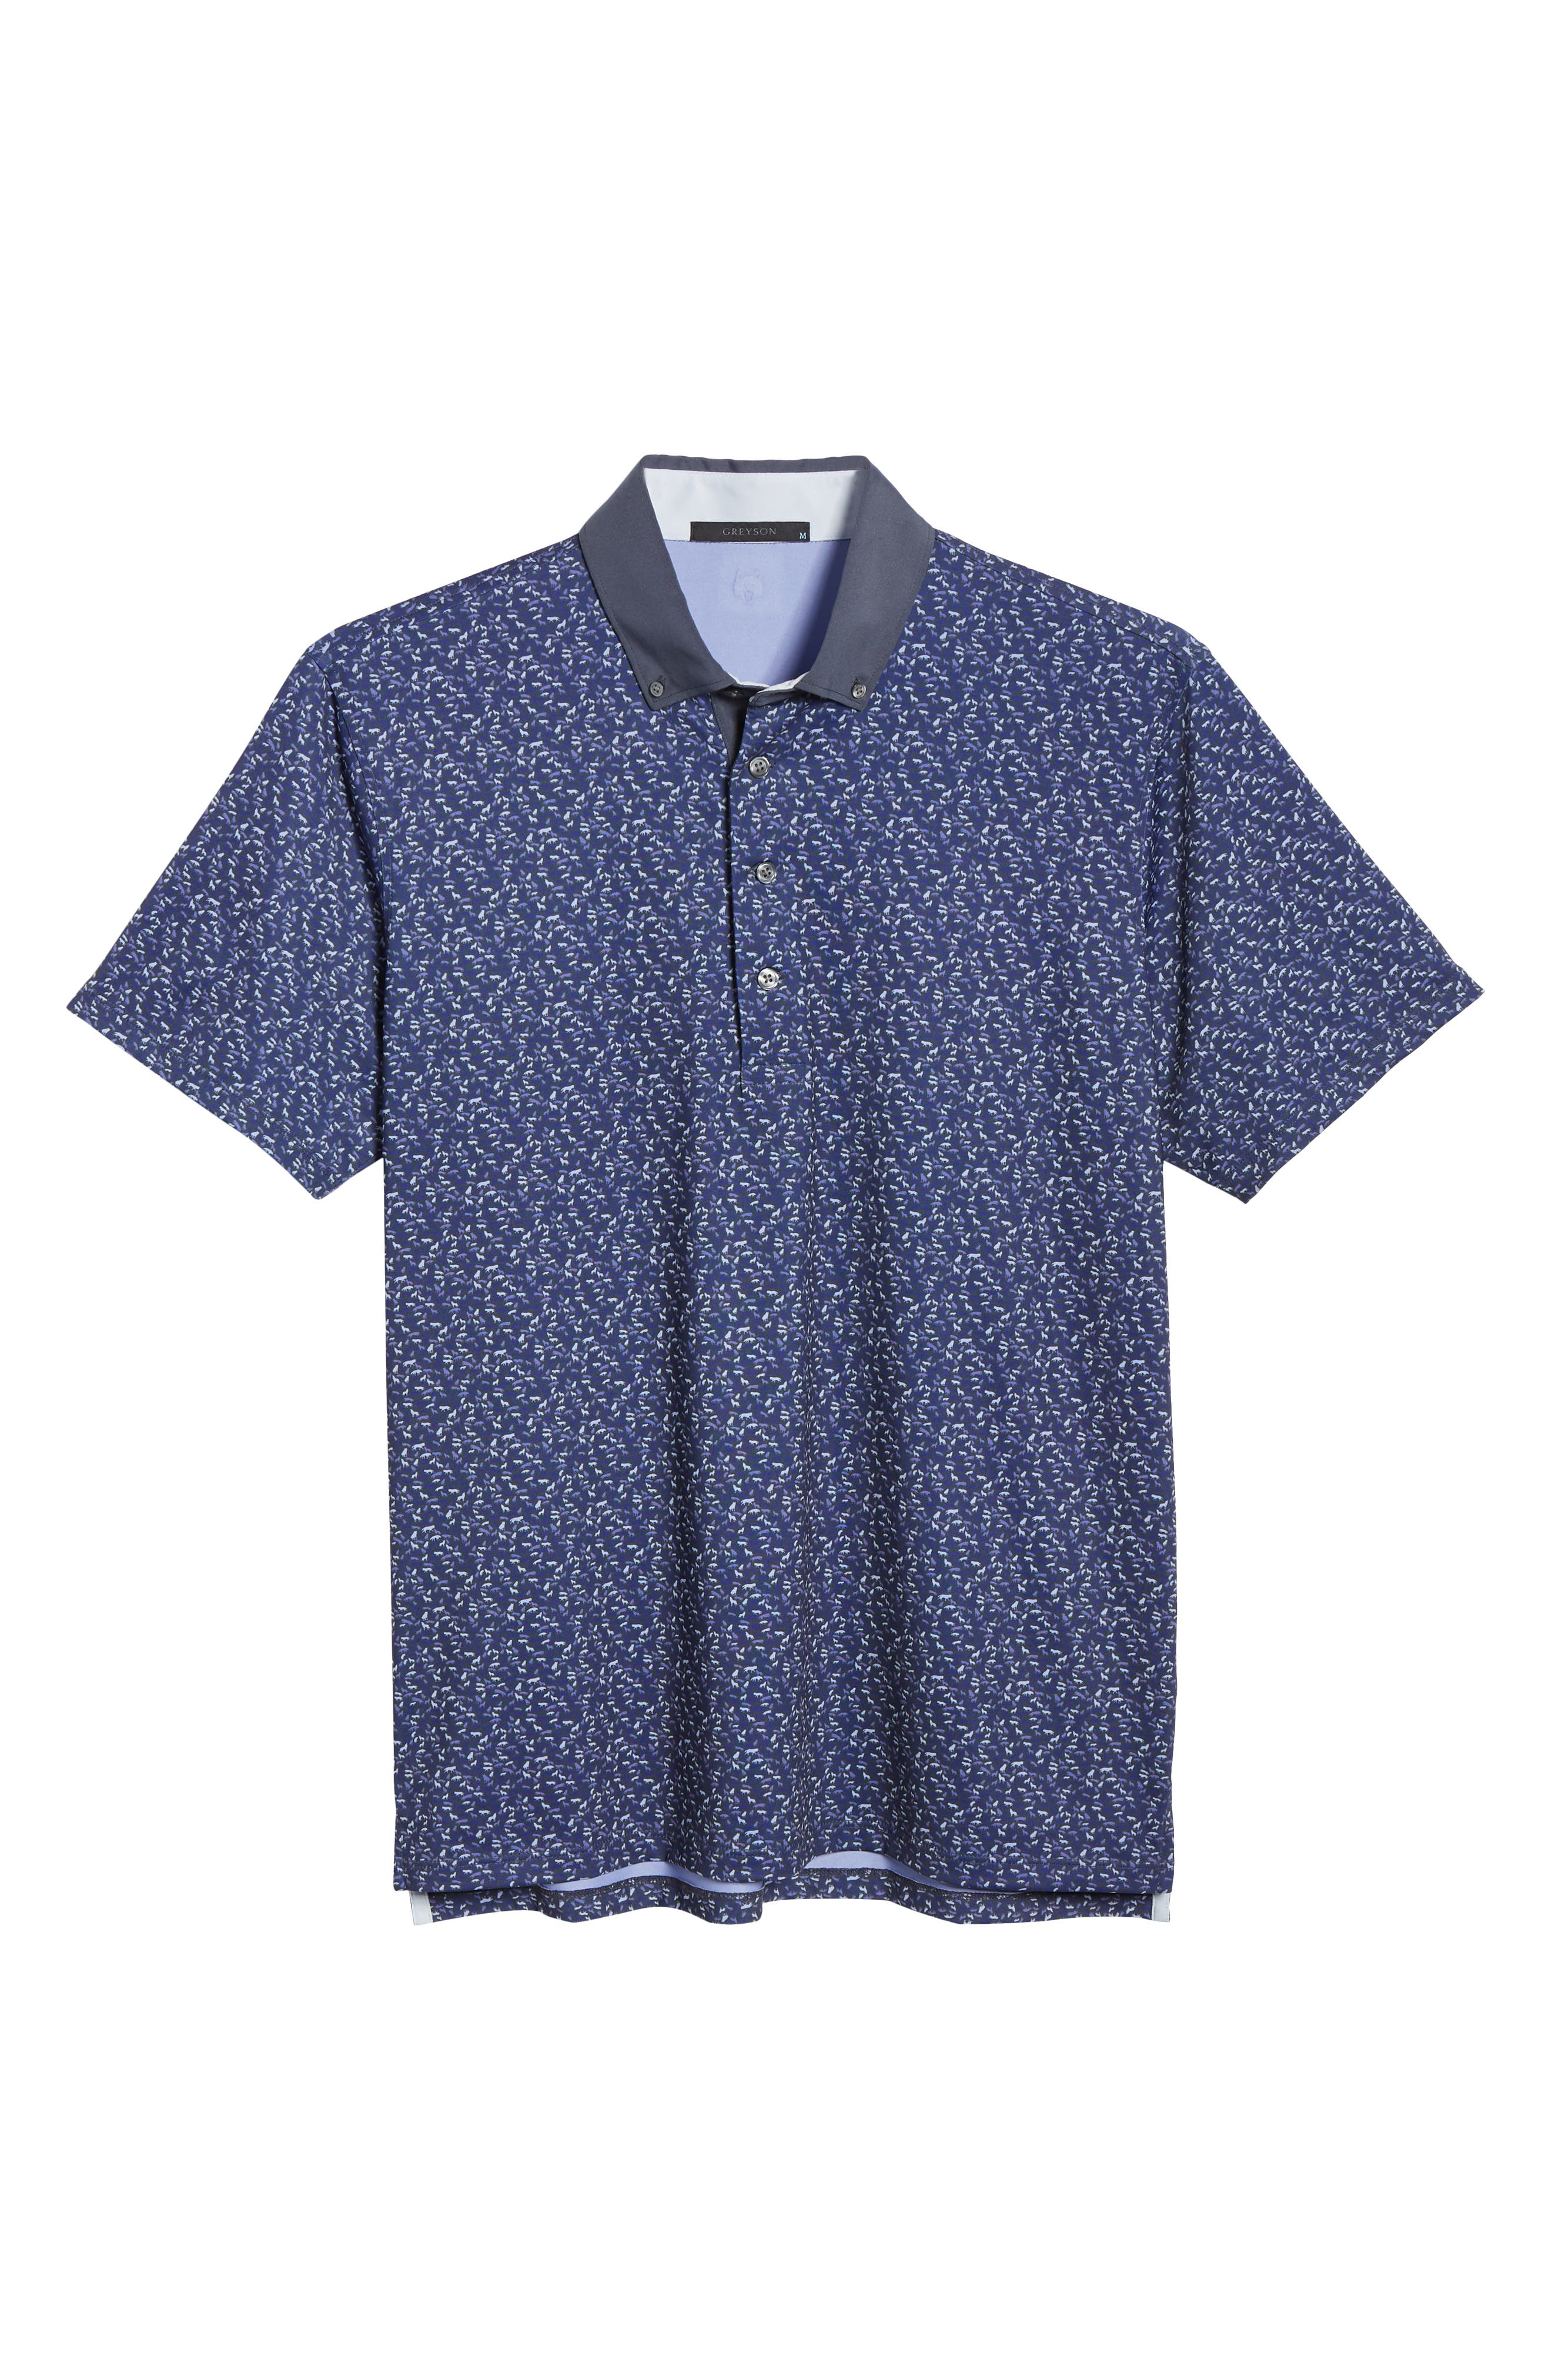 GREYSON, Wolfpack Technical Polo, Alternate thumbnail 6, color, SWALLOW/ DOVE